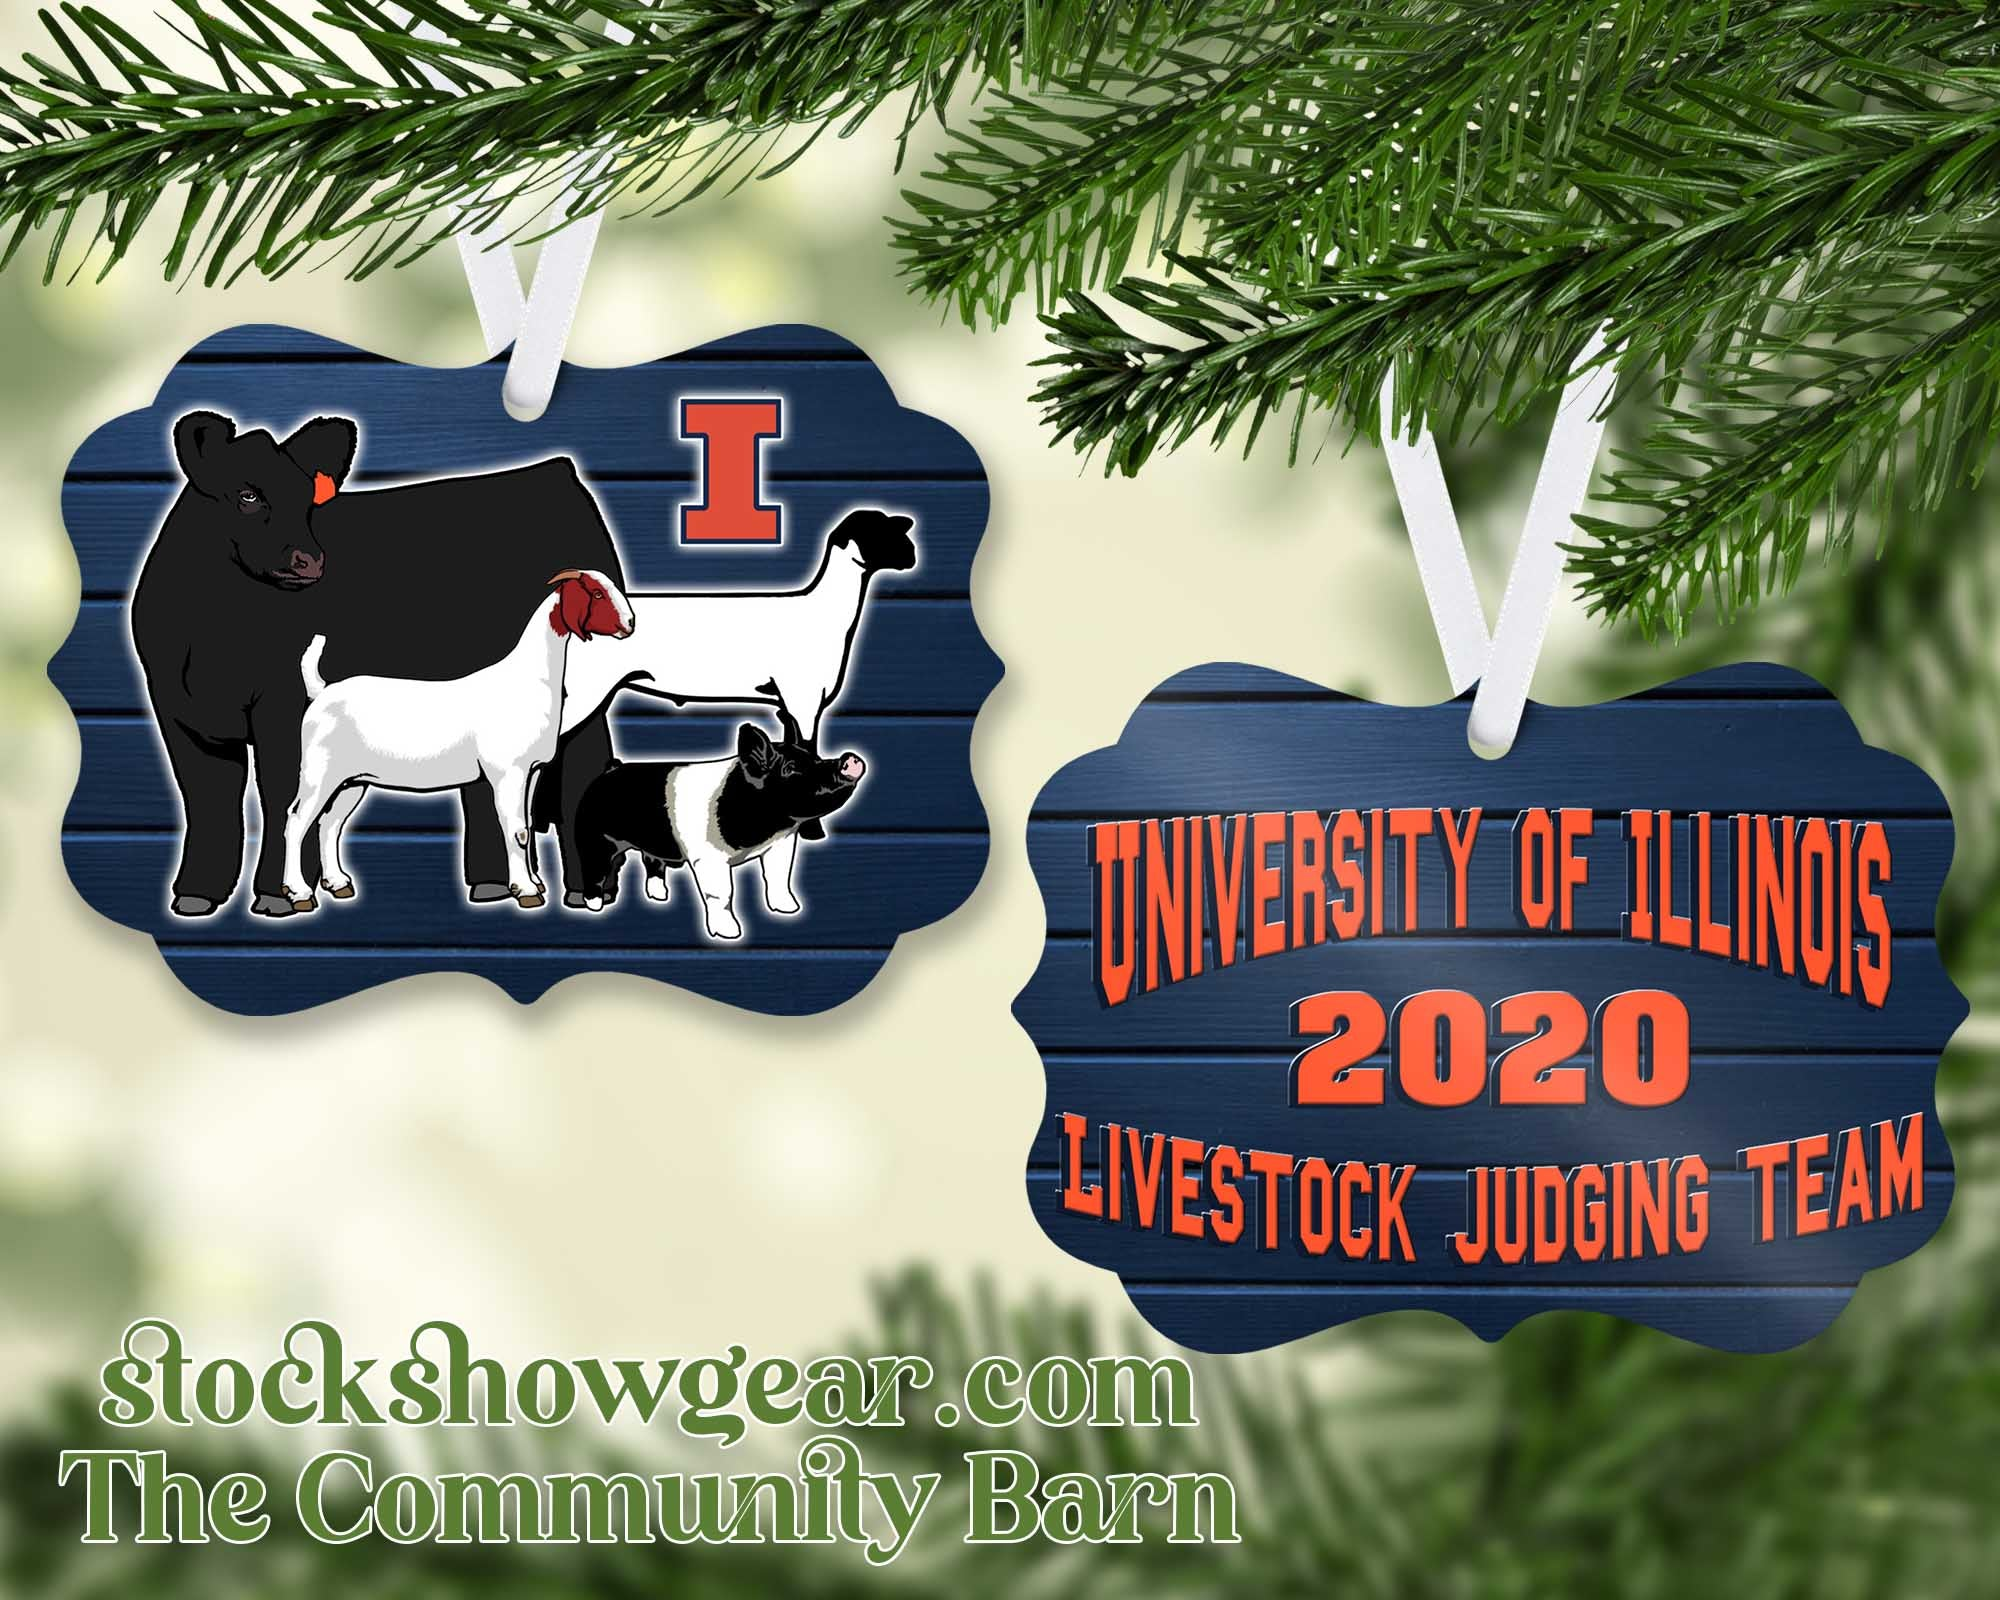 University of Illinois Livestock Judging Team